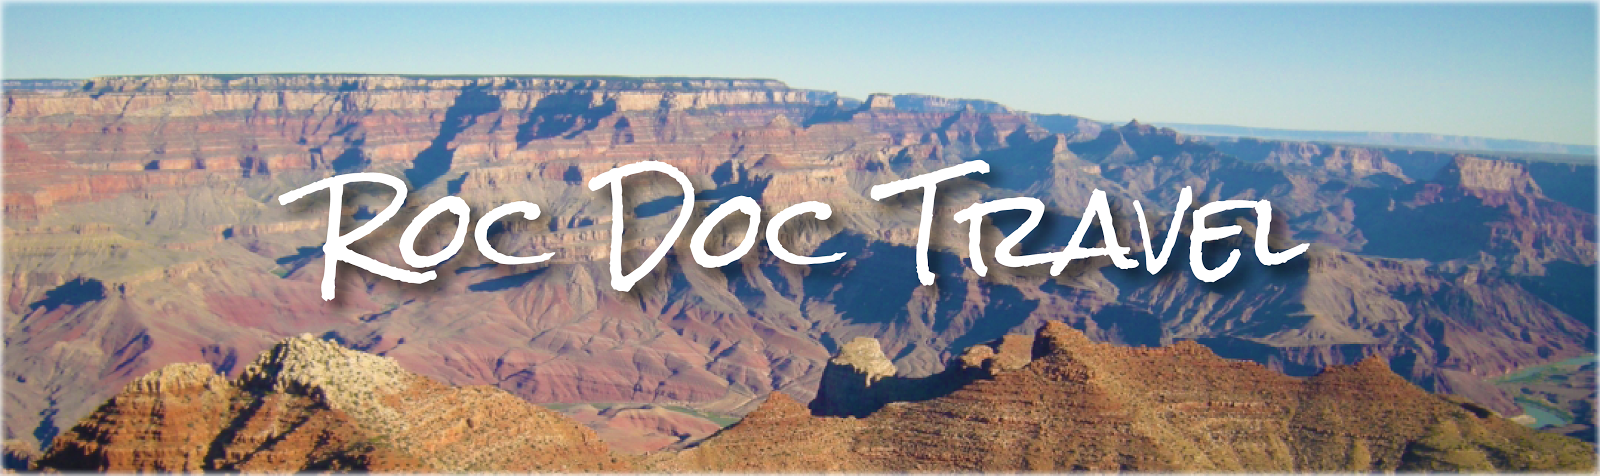 Roc Doc Travel